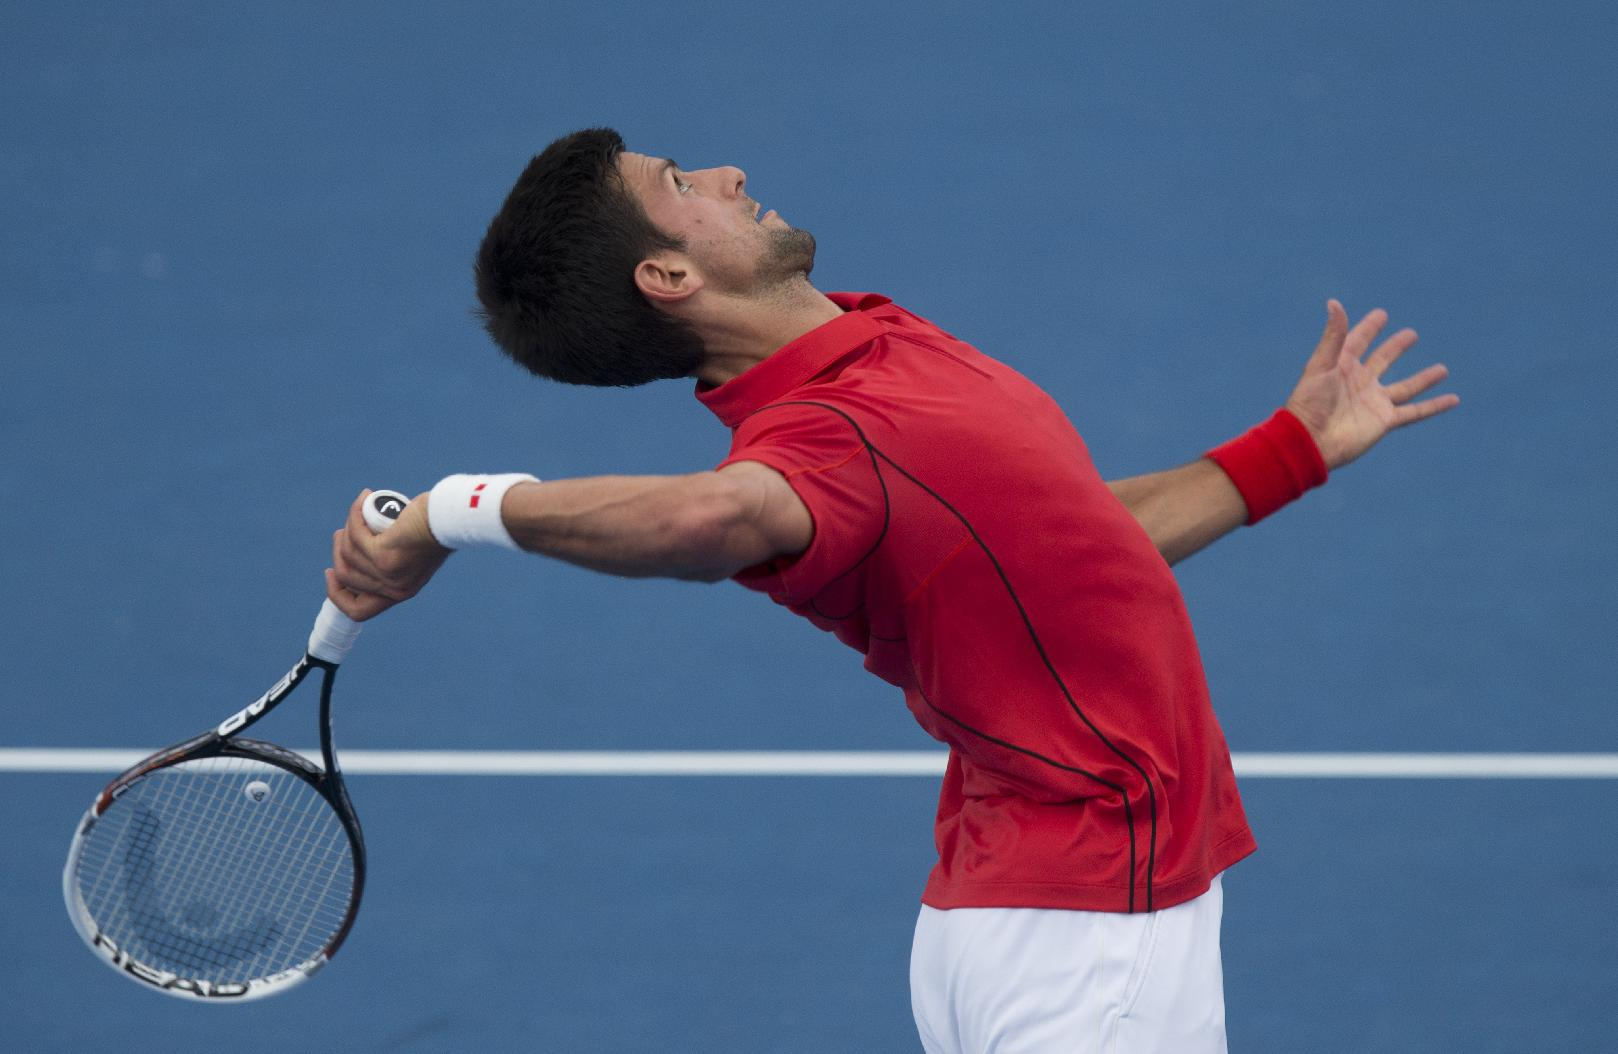 Serbia's Novak Djokovic serves to Juan Monaco of Argentina during an exhibition match at the Kooyong Classic ahead of the Australian Open tennis championship in Melbourne Australia, Thursday, Jan. 9, 2014